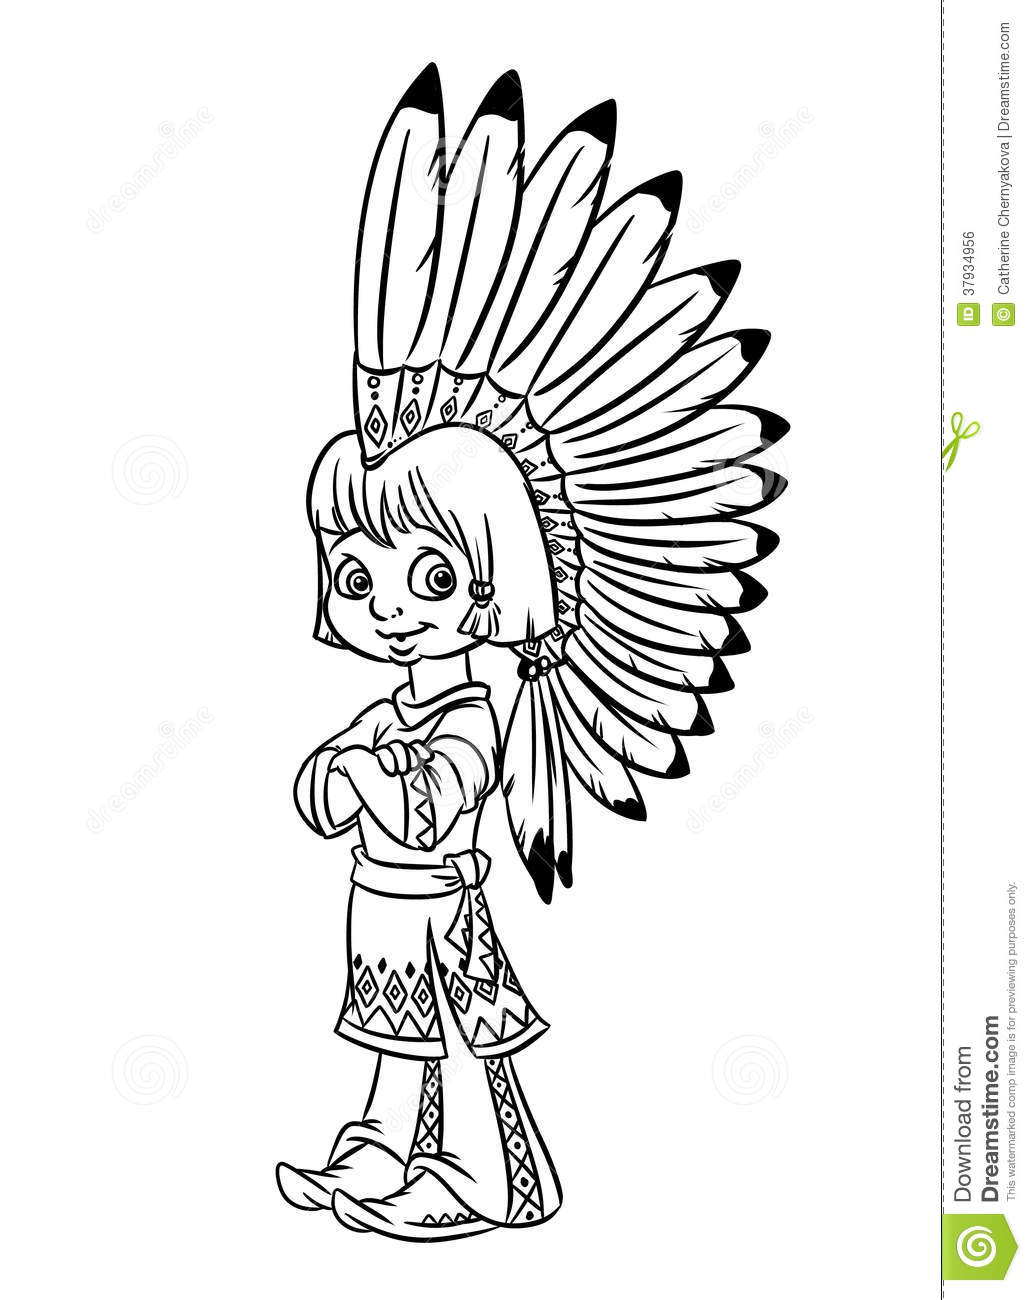 Indian chief boy illustration coloring pages stock for Free indian coloring pages